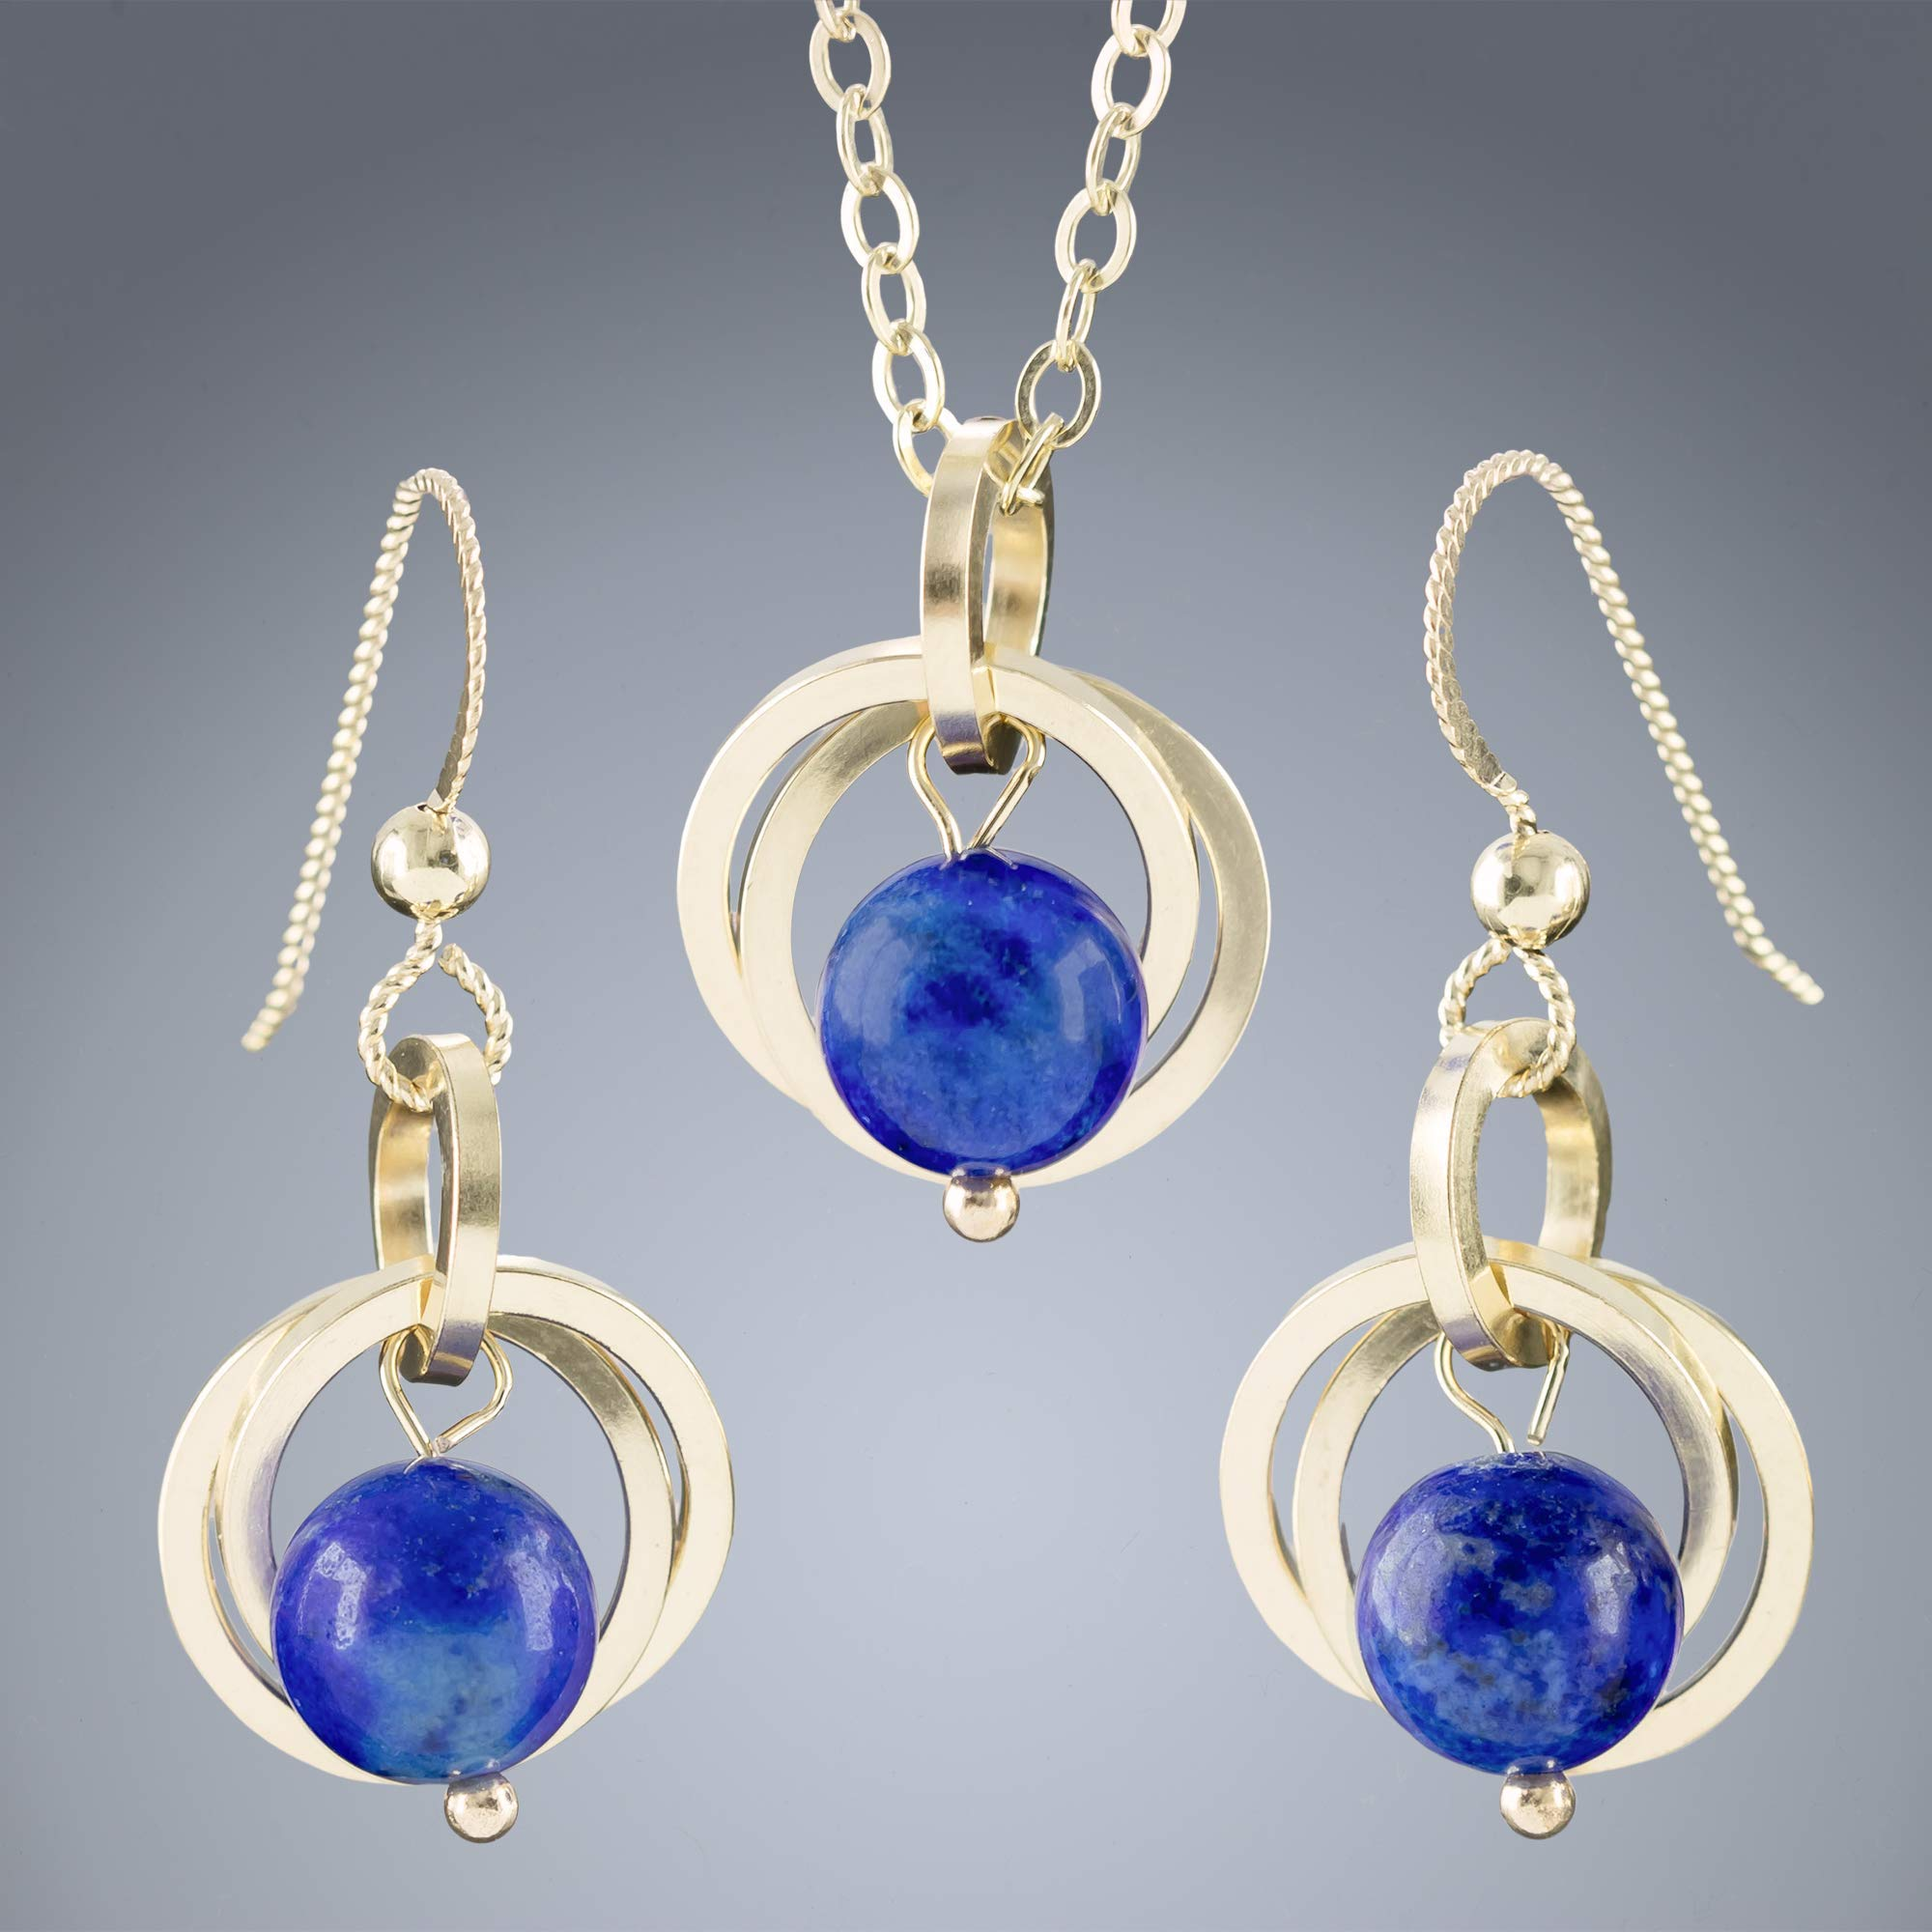 Lapis Lazuli 14K Gold Filled Gemstone Necklace and Earrings Set  Gift